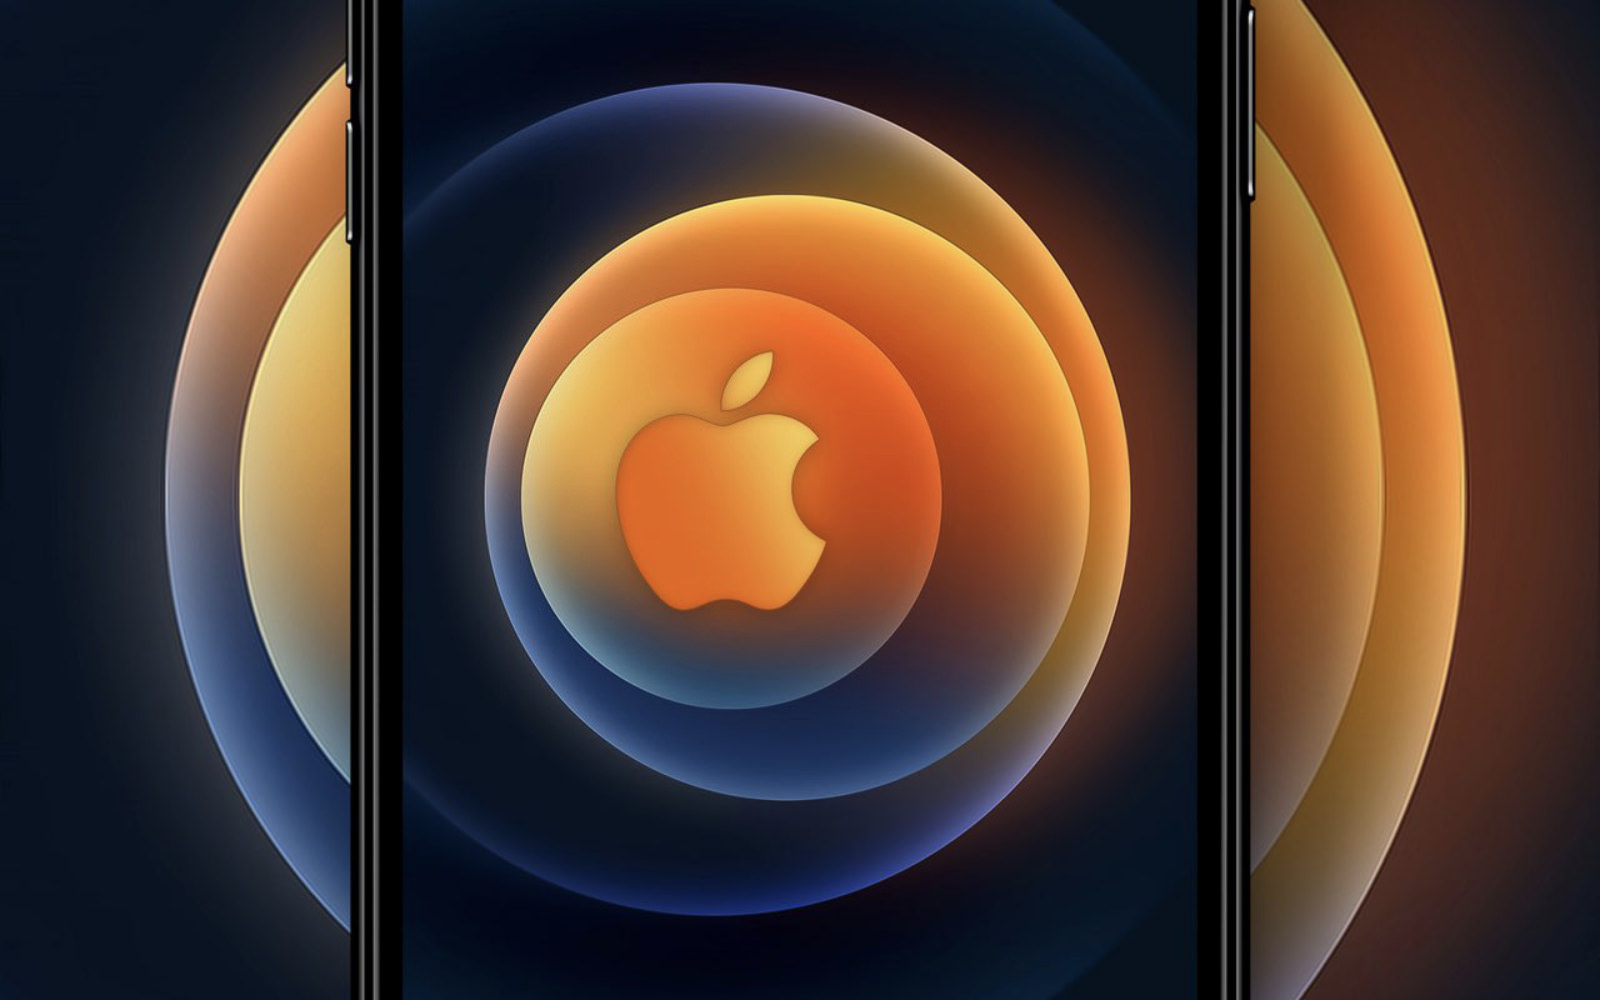 Iphone12 event invitation wallpapers